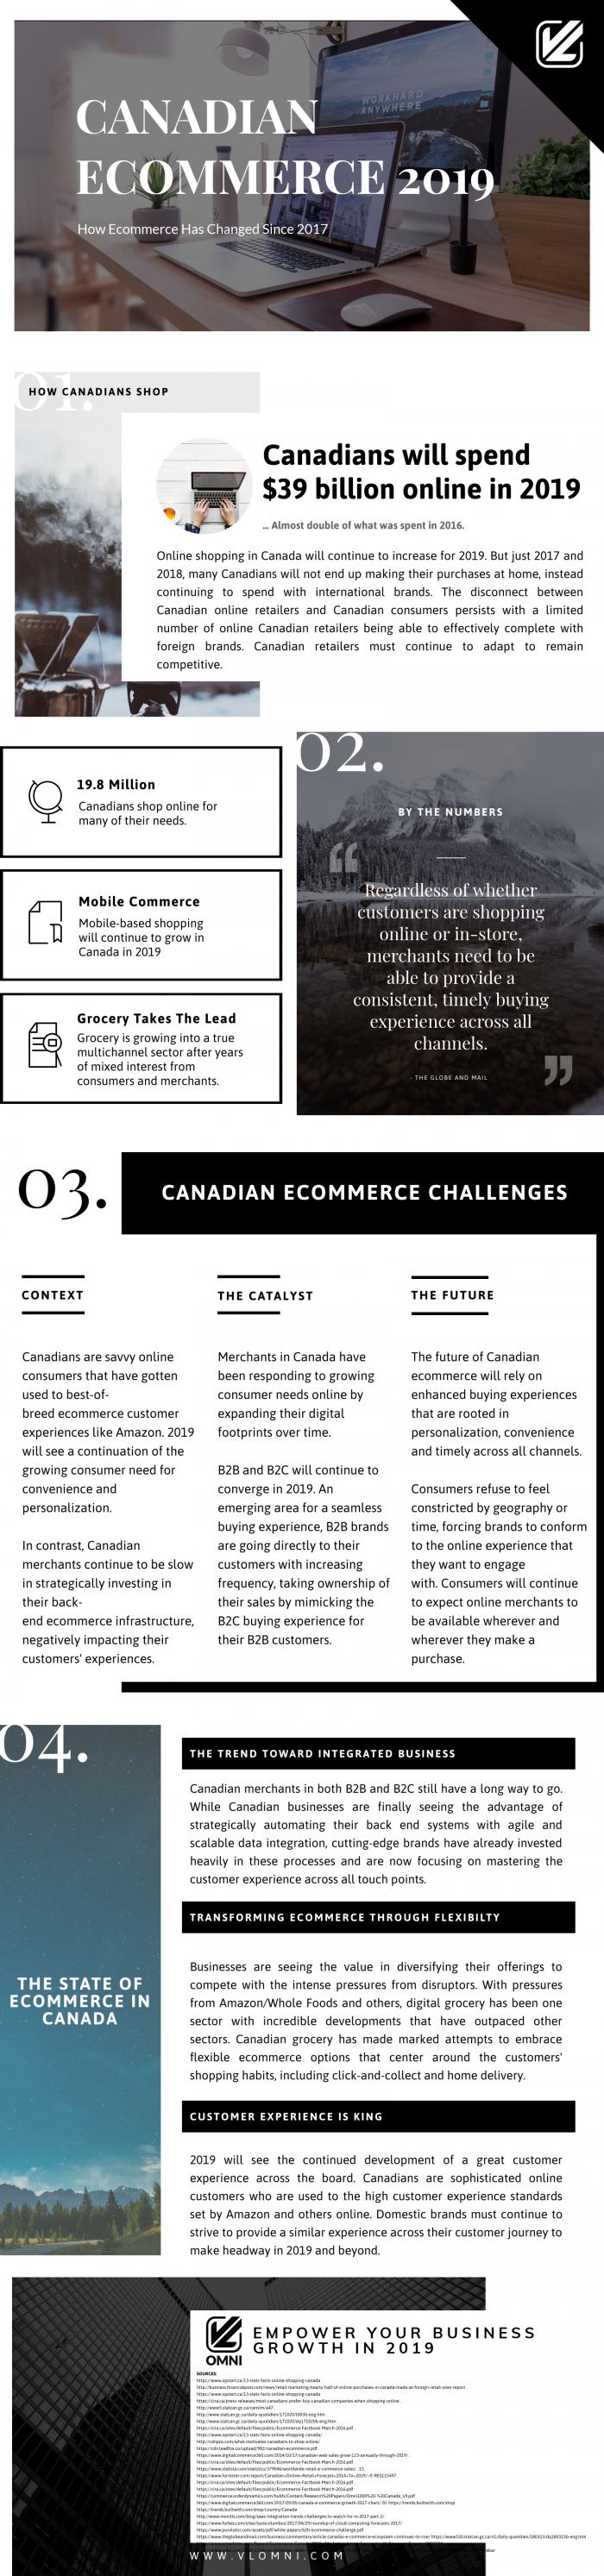 Canadian Ecommerce 2019 - A VL OMNI Infographic